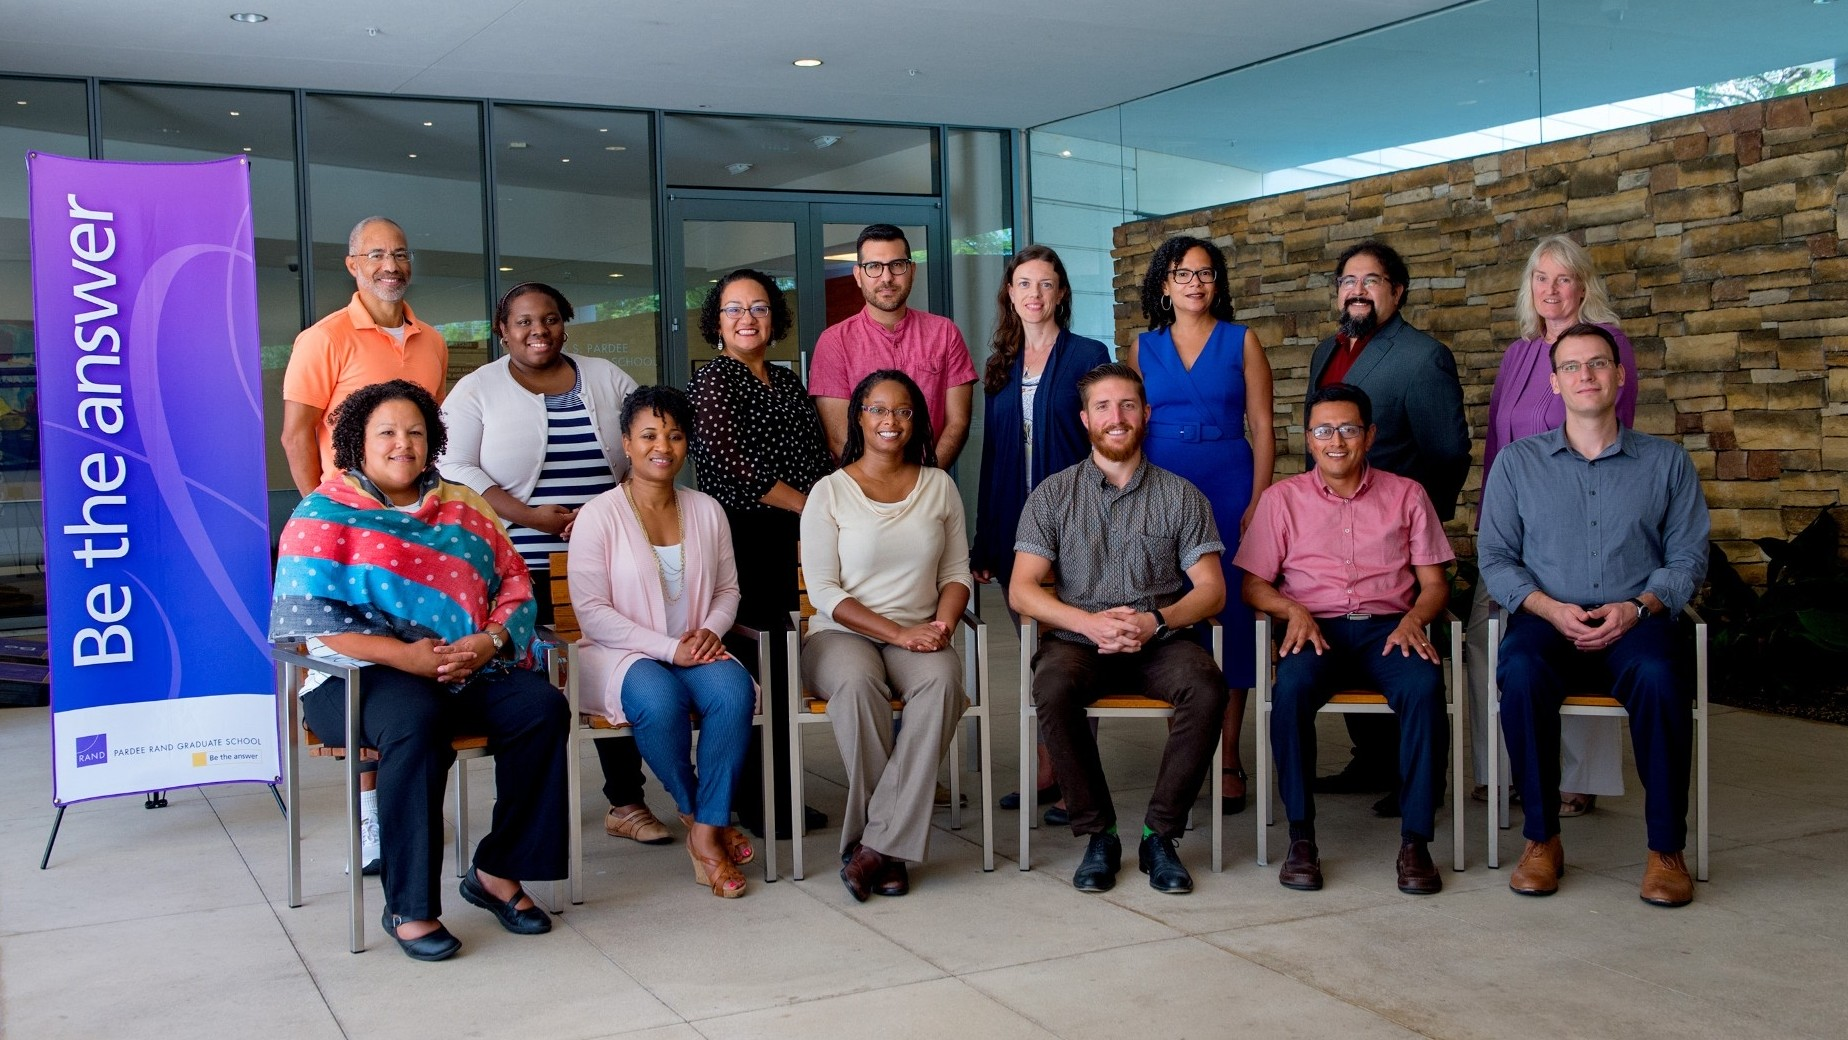 The 2018 cohort of Faculty Leaders, with Shearon Roberts standing in the back row, second from the left, photo by Diane Baldwin/RAND Corporation